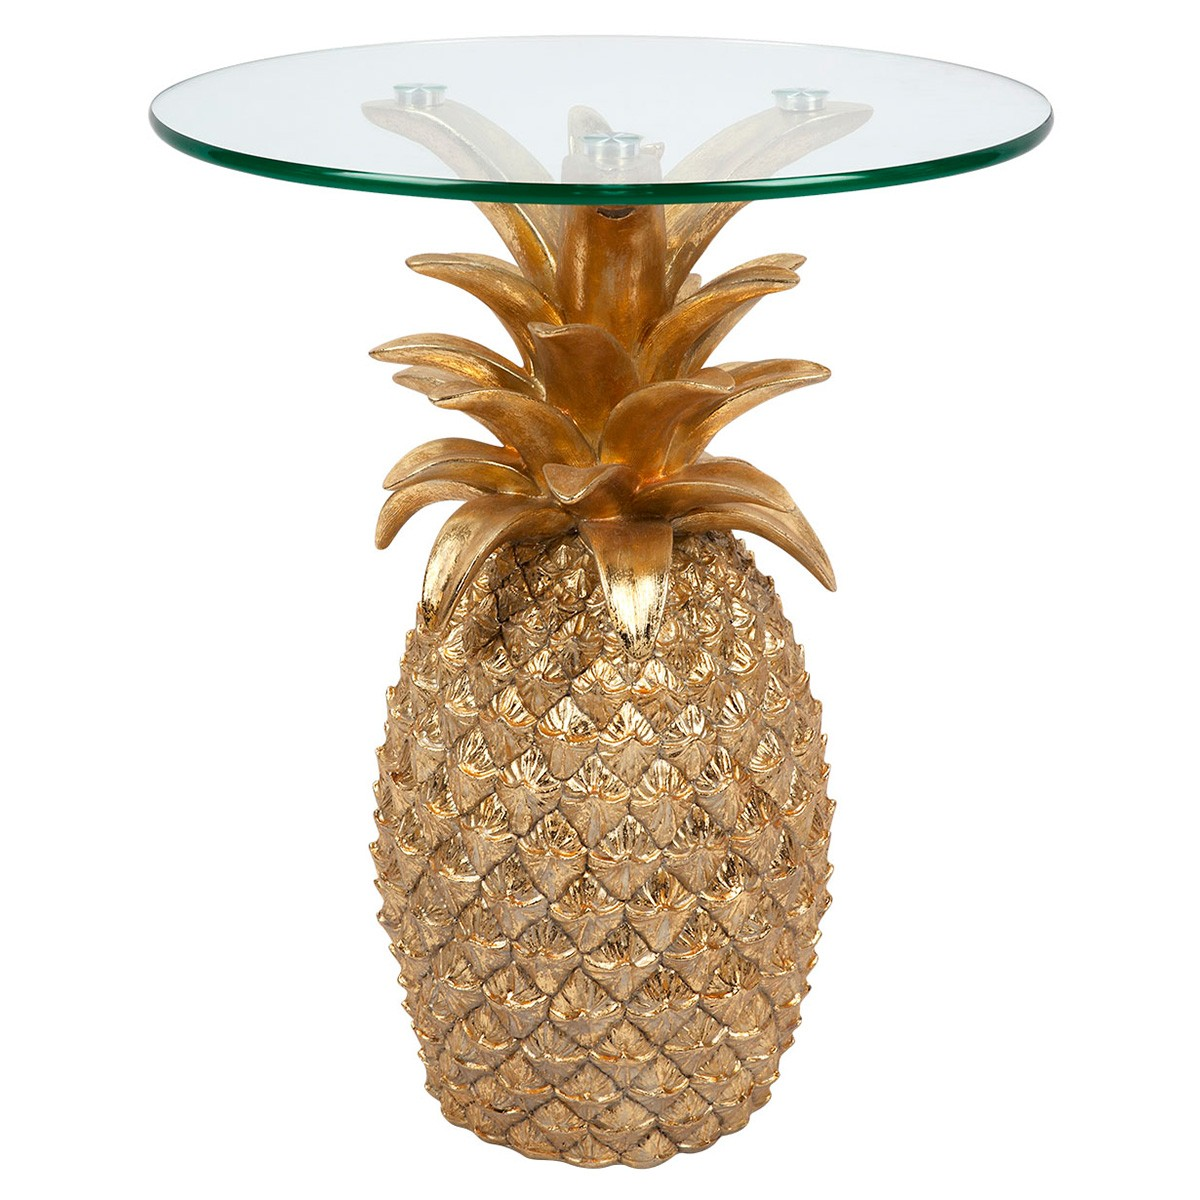 Tropicana Handcrafted Glass Top Pineapple Side Table